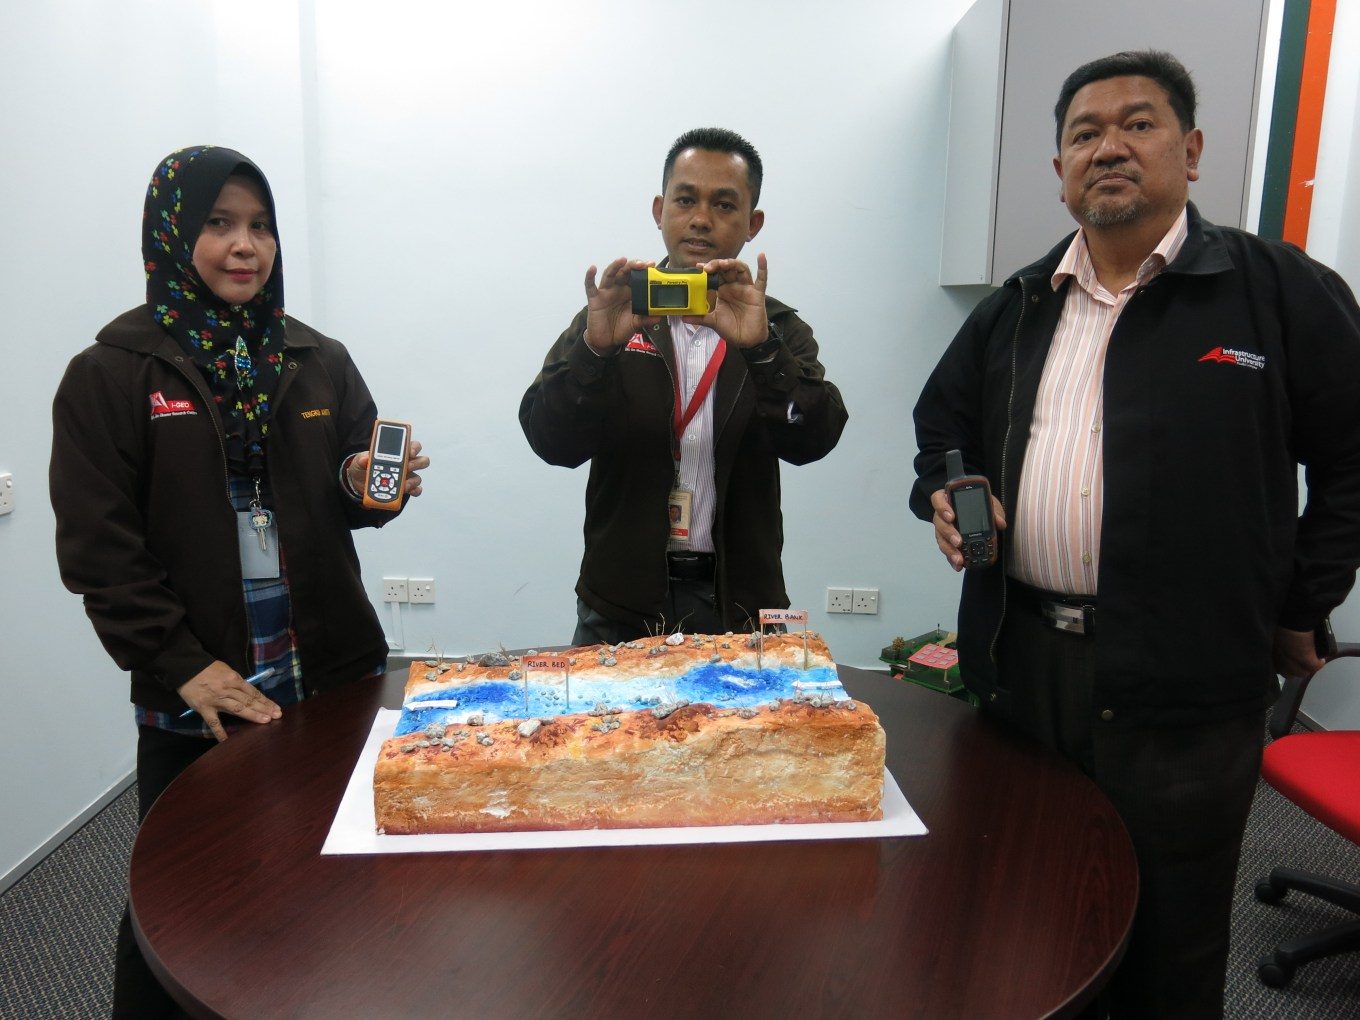 (From left) Lecturer, Faculty of Engineering and Technology Infrastructure, Ir. Tengku Anita Raja Hussin, Mohd. Sofiyan and Roslan Zainal Abidin showing devices used to detect the location of landslide and steepness of slopes.